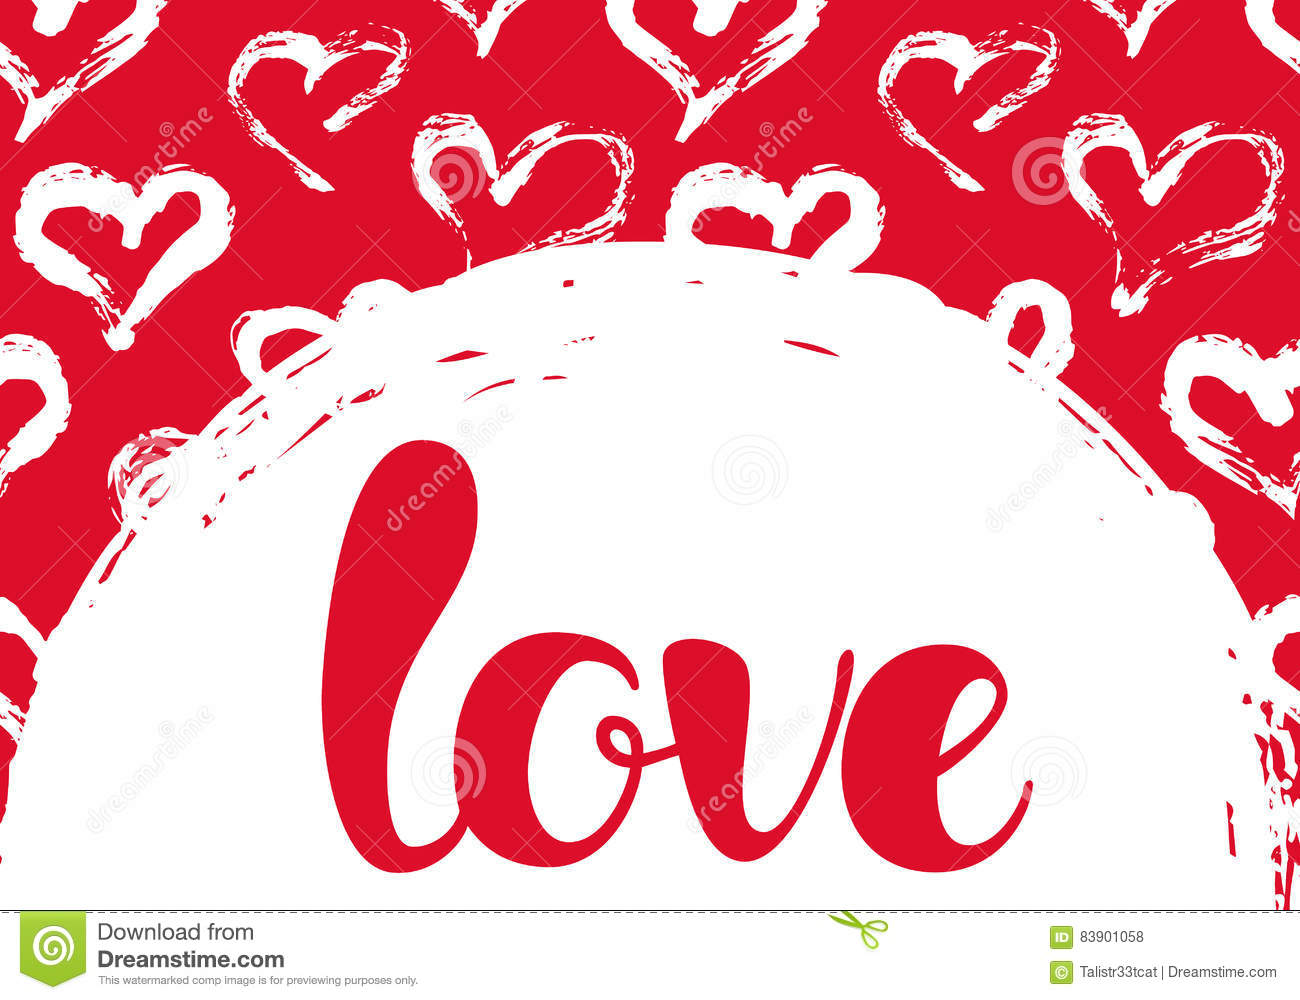 Vector Illustration With Hearts And LOVE Lettering Stock ...